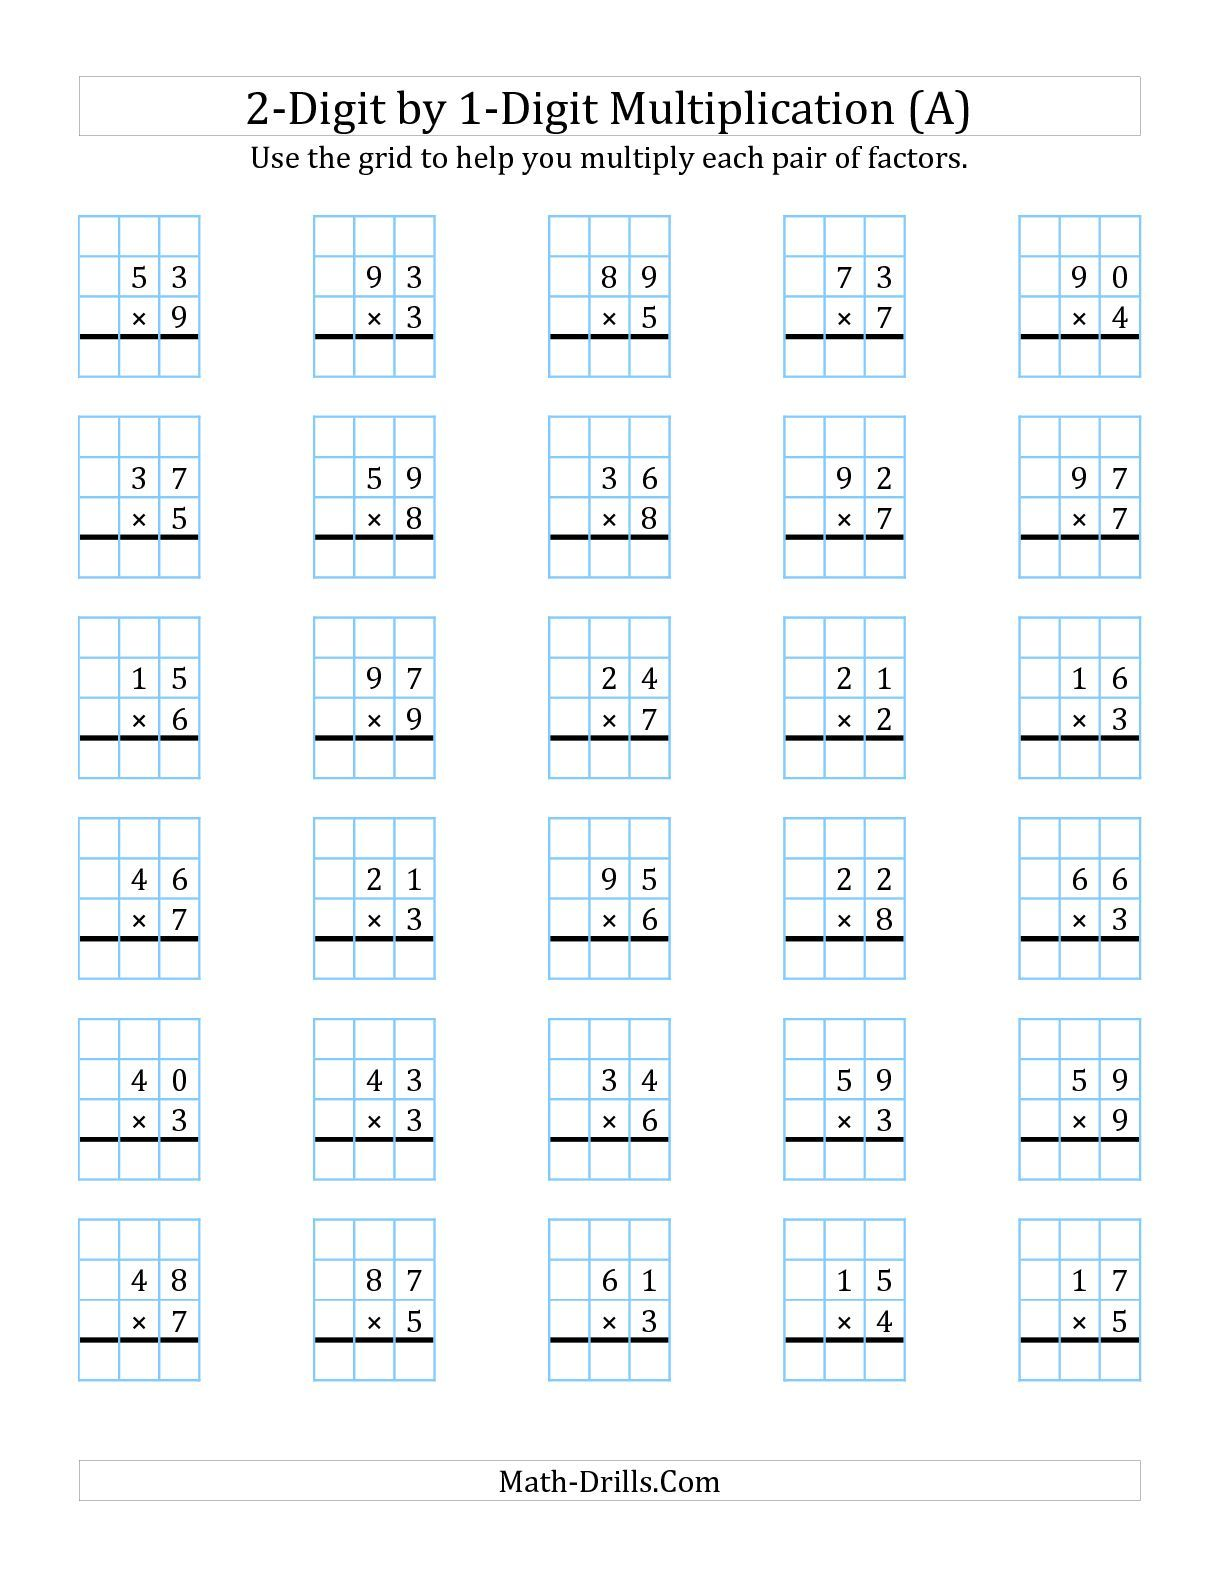 The Digit By Digit Multiplication With Grid Support A Math  The Digit By Digit Multiplication With Grid Support A Math Worksheet  From The Long Multiplication Worksheet Page At Mathdrillscom